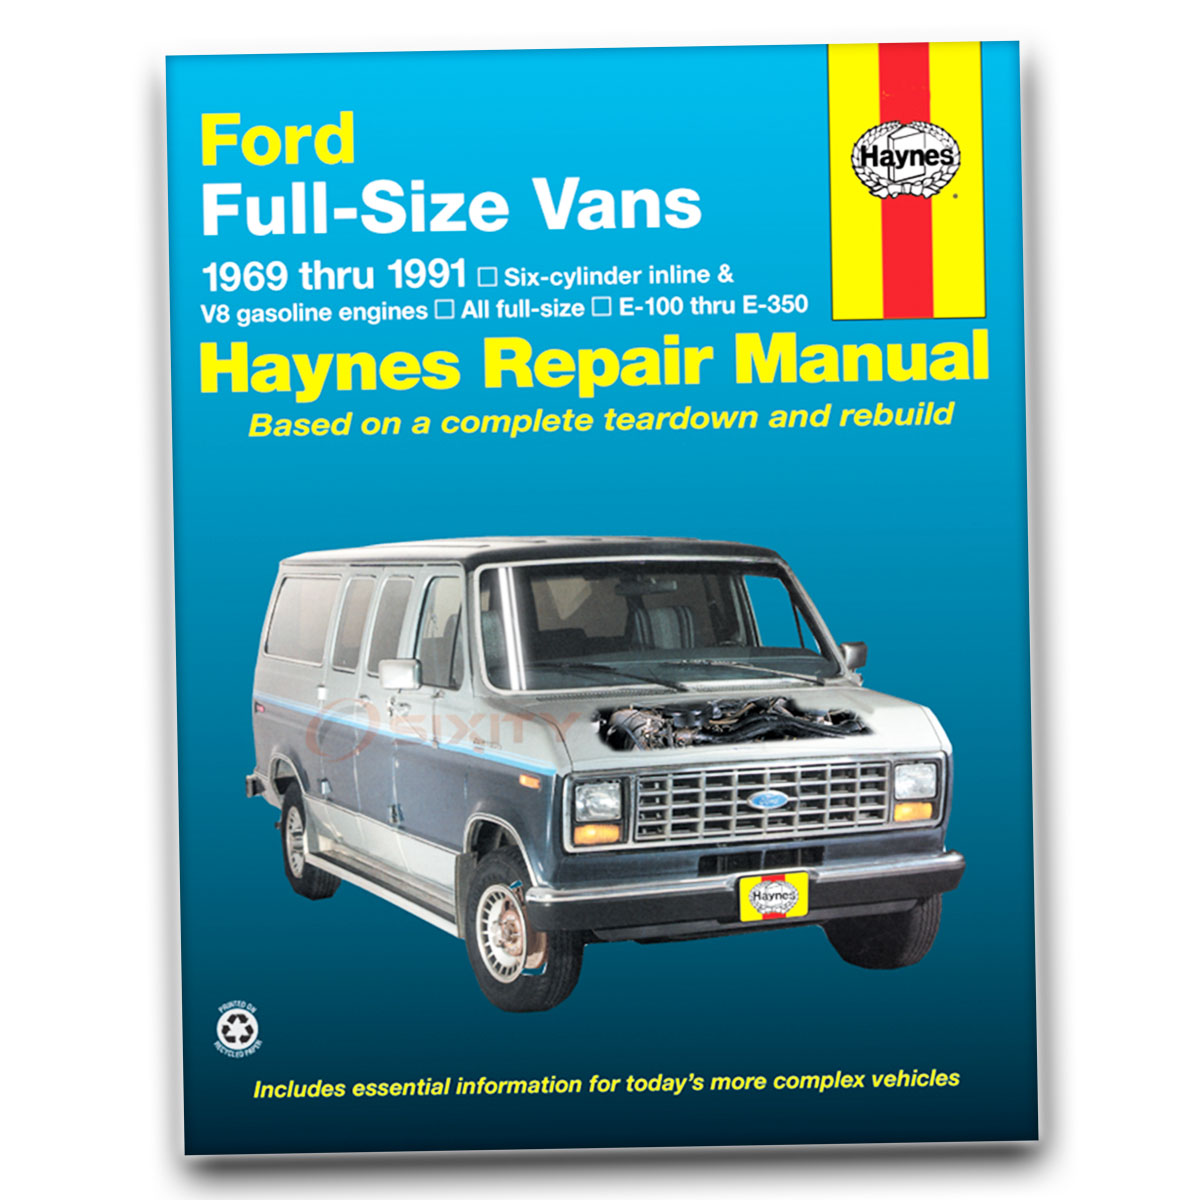 Ford E 350 Van Wiring Schematic Trusted Diagrams Super Duty Diagram 1998 E350 Owners Manual Today Guide Trends Sample U2022